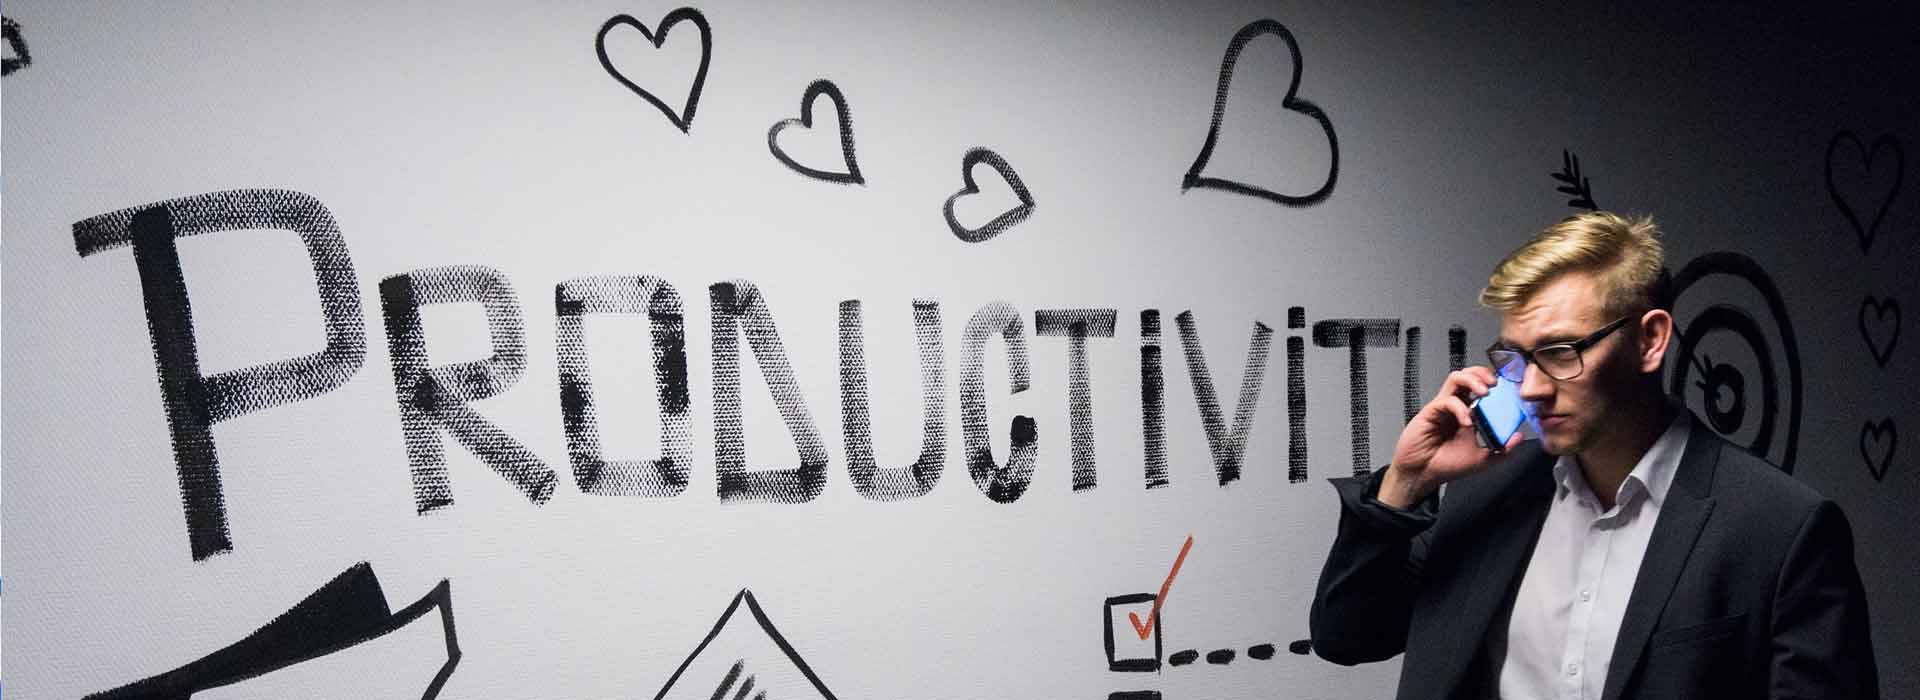 why business productivity matters